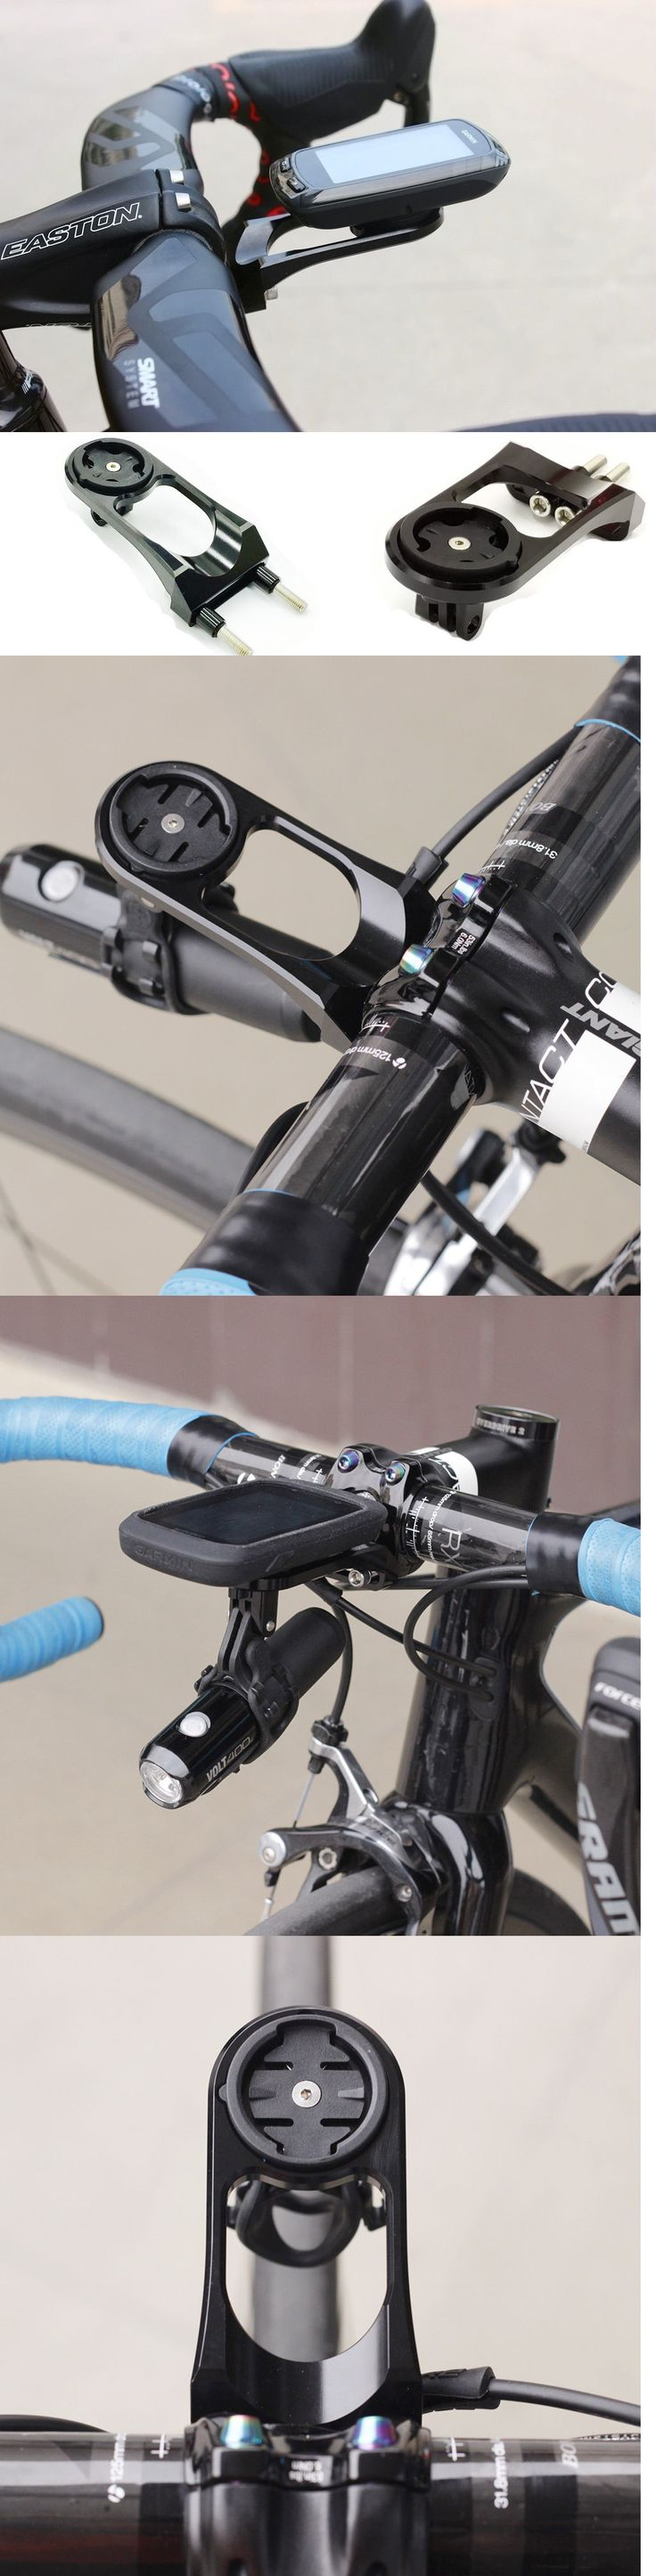 Cycle Computers and GPS 30108: Us Out Front Stem Computer Mount Bracket Holder For Garmin 1000 820 Gopro -> BUY IT NOW ONLY: $43.69 on eBay!